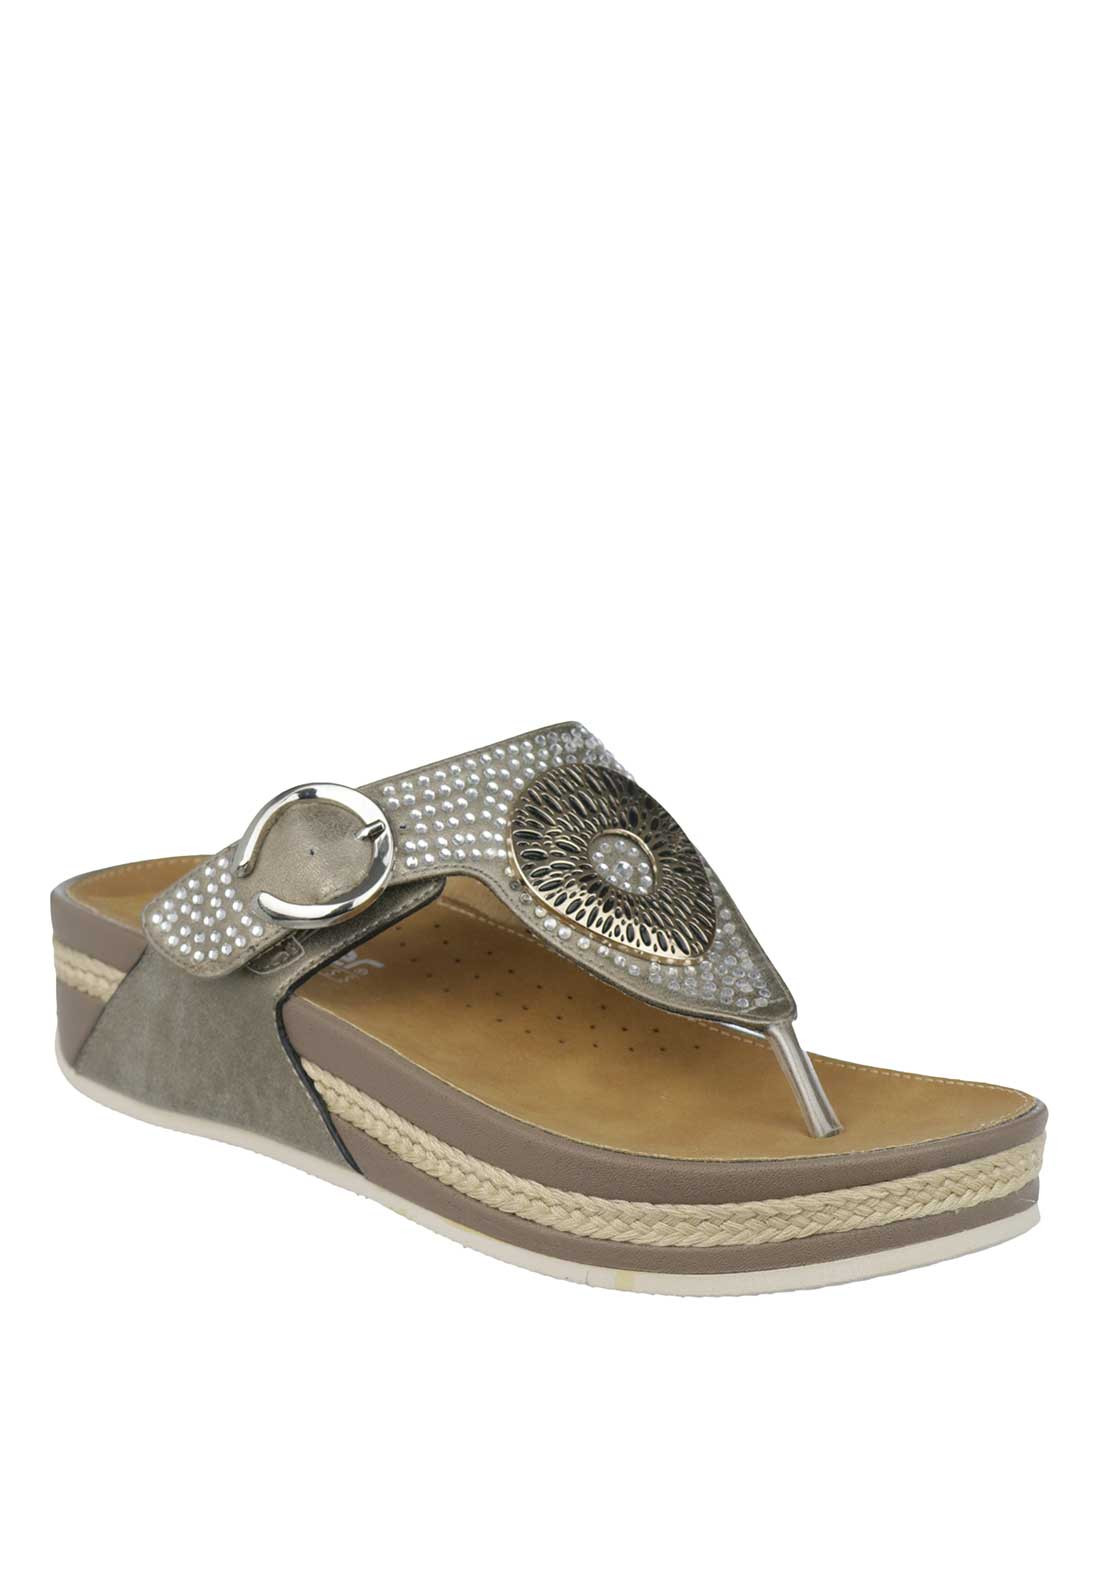 Rieker Womens Embellished Toe Thong Slip on Sandals, Pewter